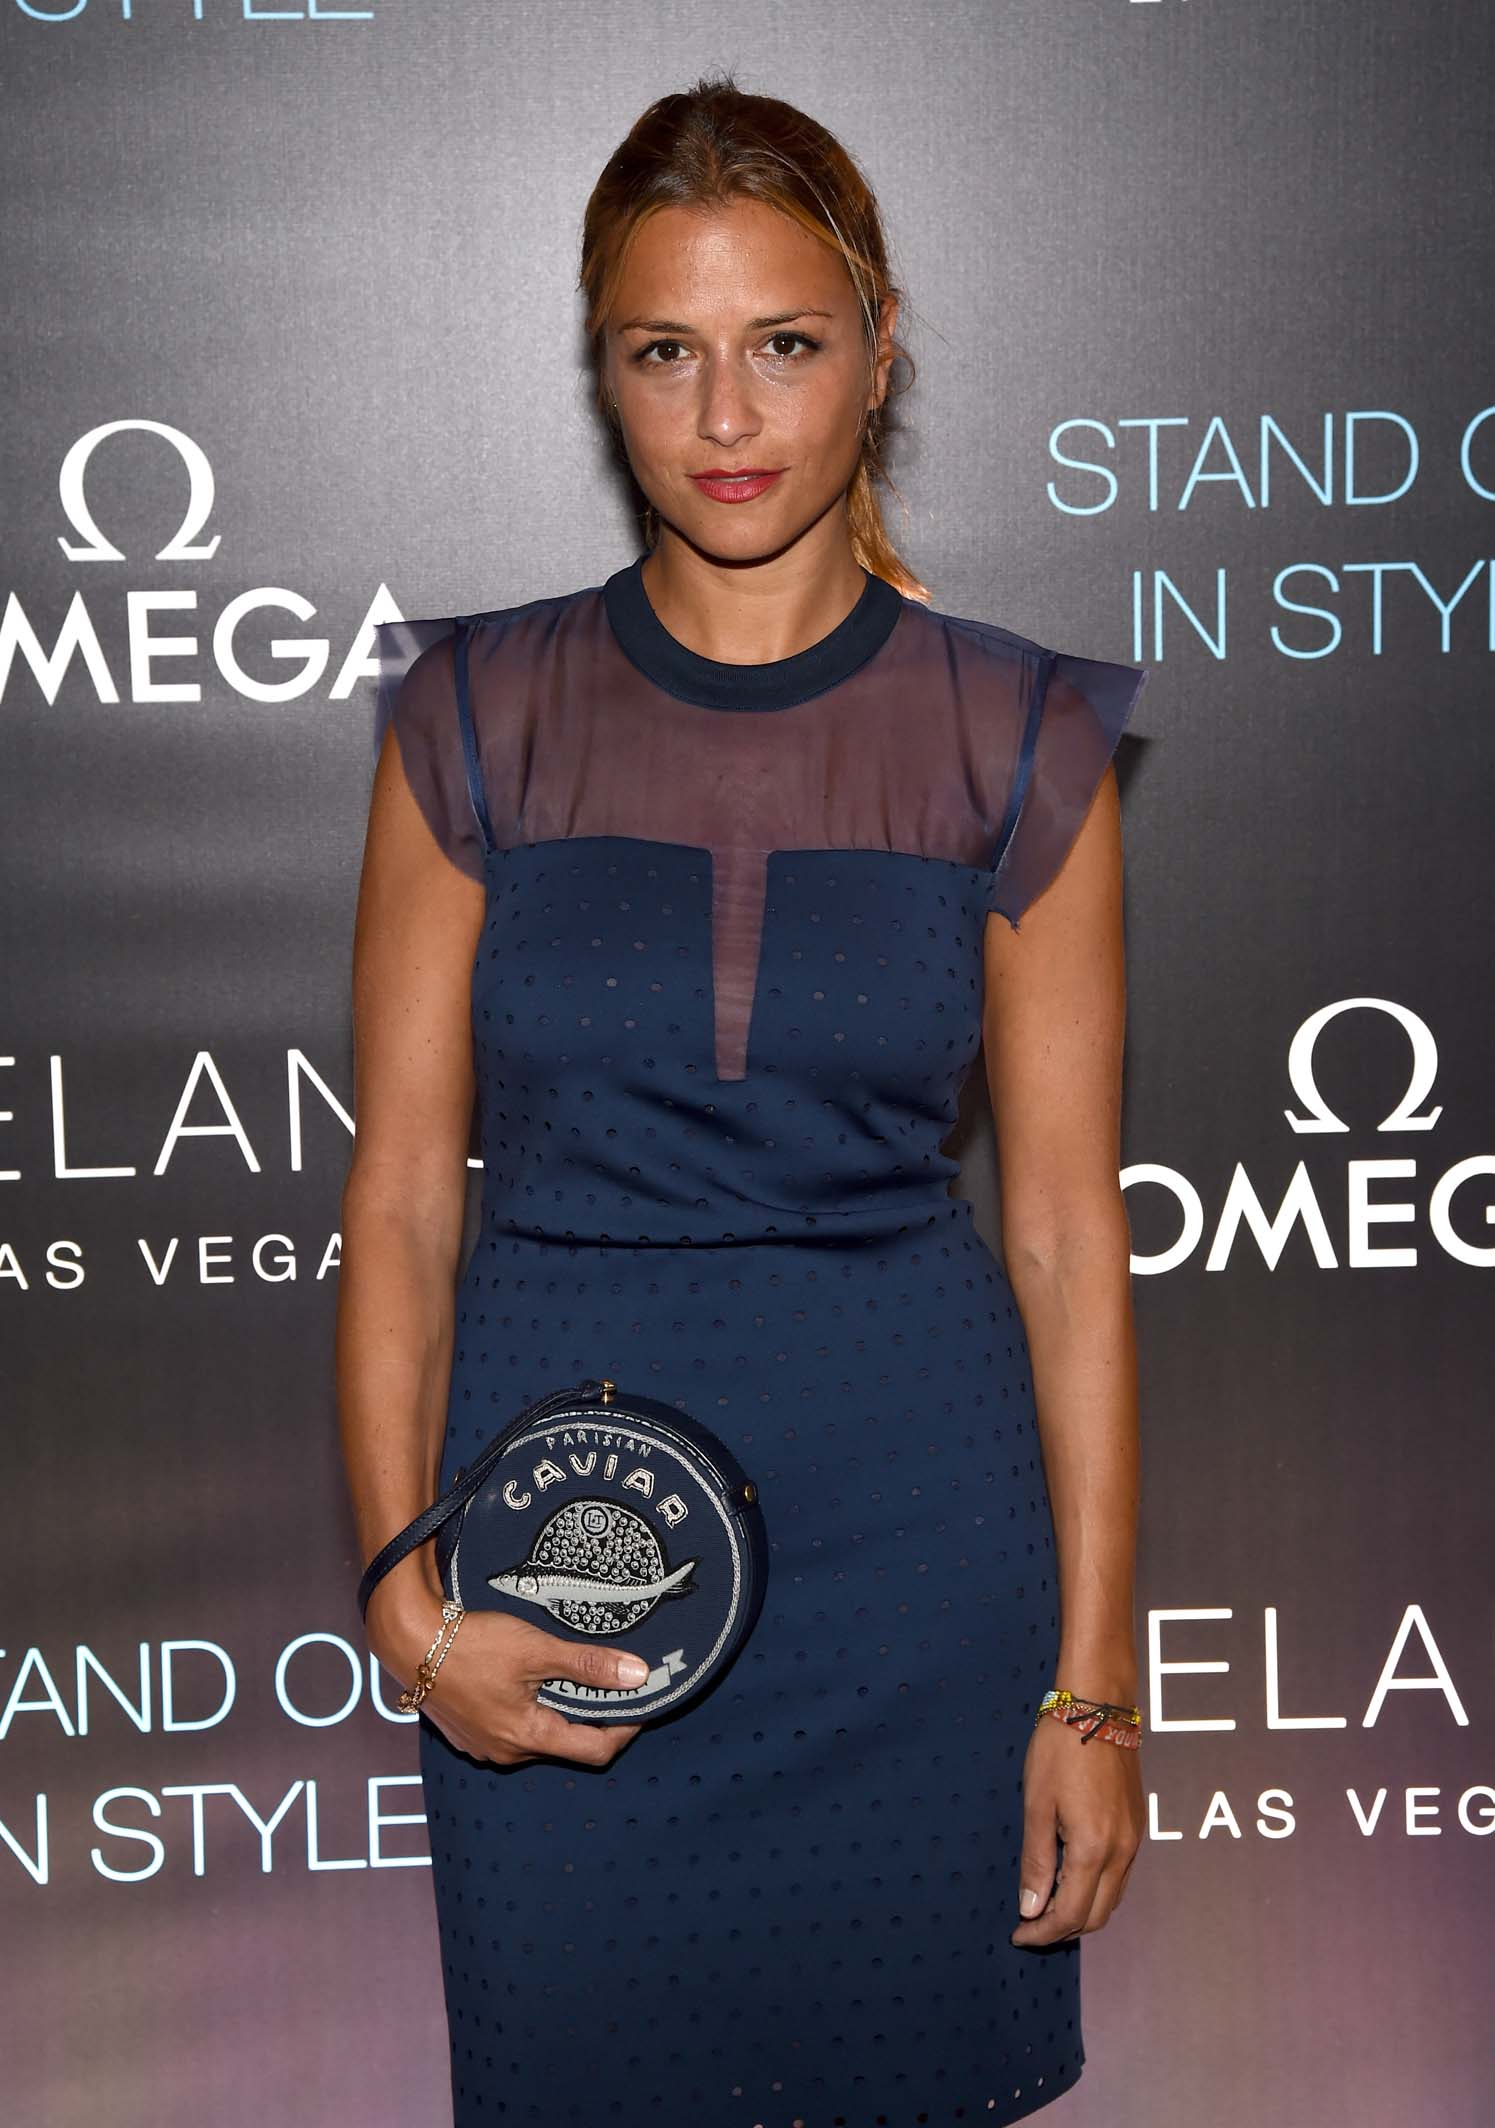 Before the grand opening of Delano Las Vegas, fashion designer Charlotte Ronson poses on the red carpet.